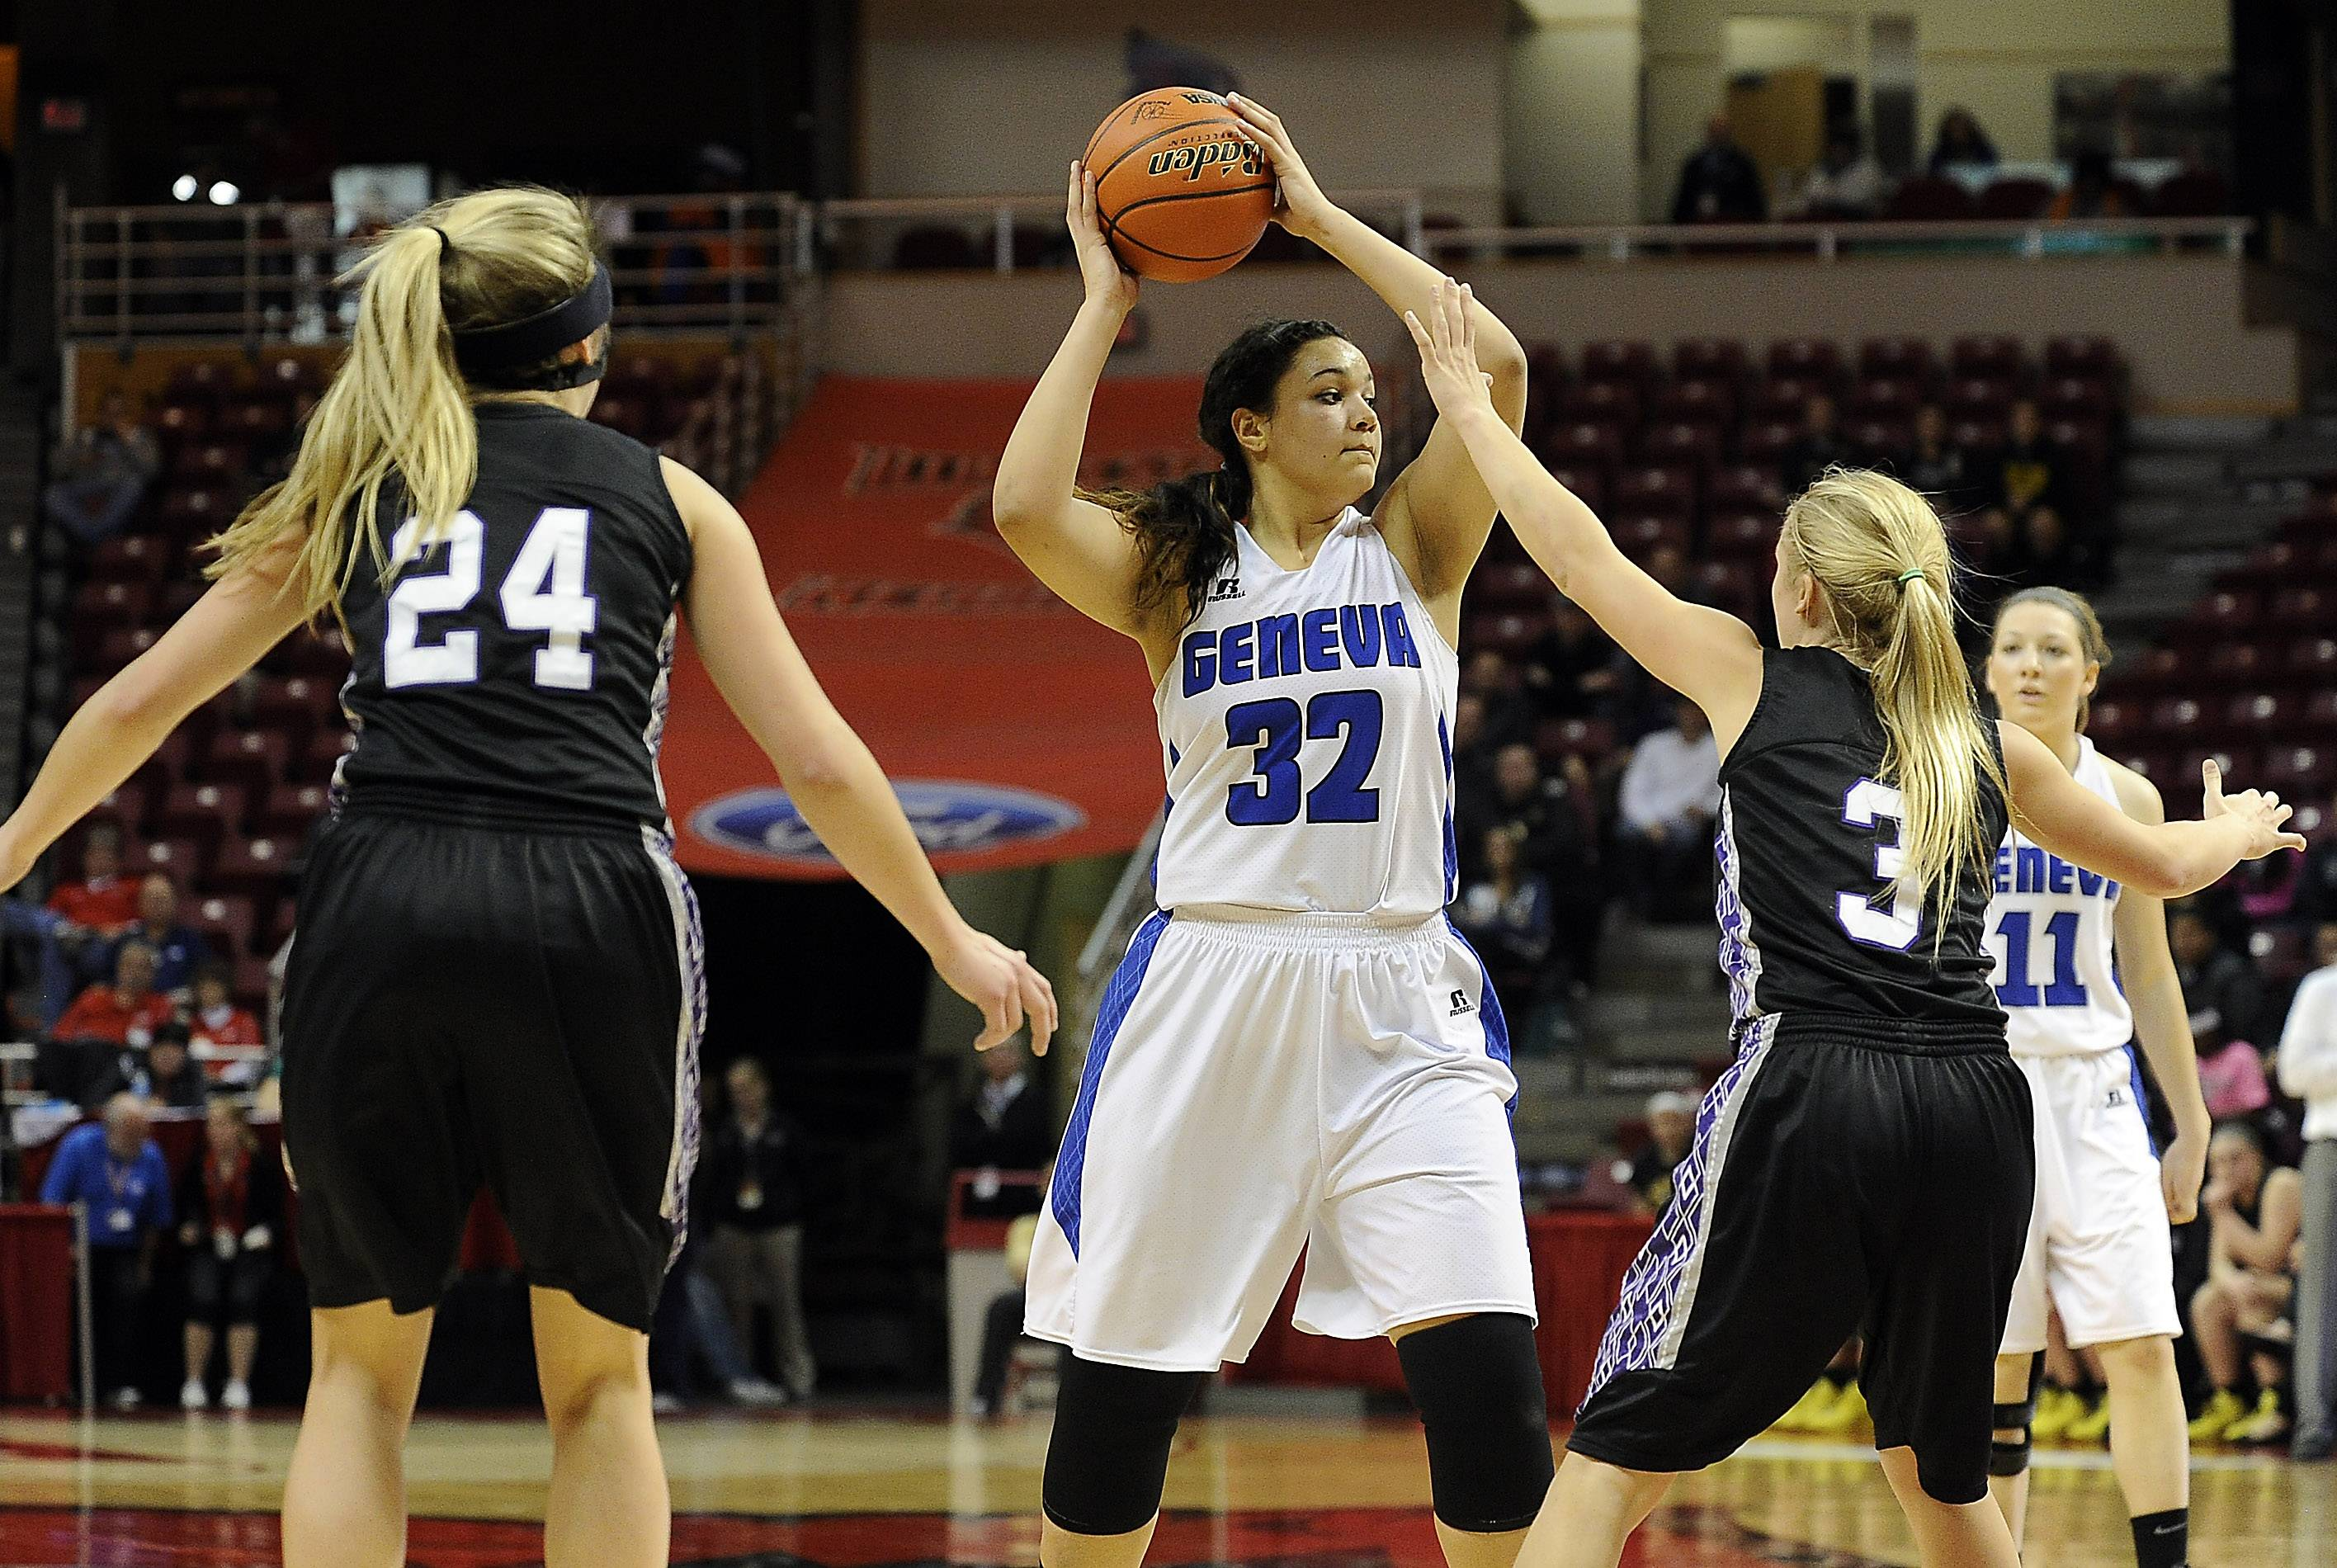 Geneva's Sidney Santos goes up against Rolling Meadows' Alexis Glasgow and Jackie Kemph in the second half of the Class 4A state semifinals in Normal on Friday. Santos fouled out in the fourth quarter.